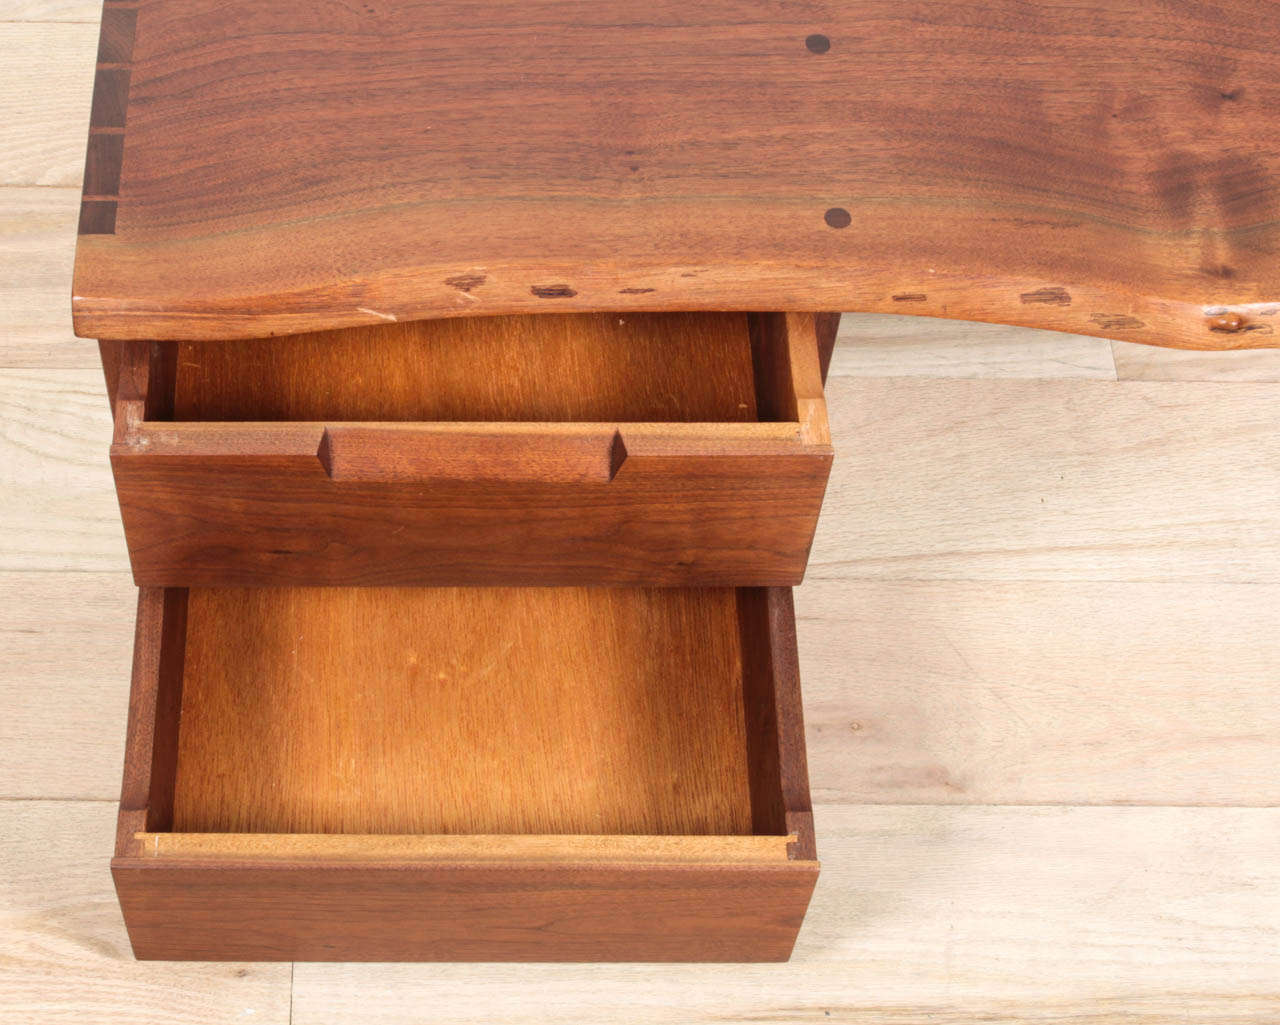 george nakashima wall mounted shelf with drawers for sale. Black Bedroom Furniture Sets. Home Design Ideas